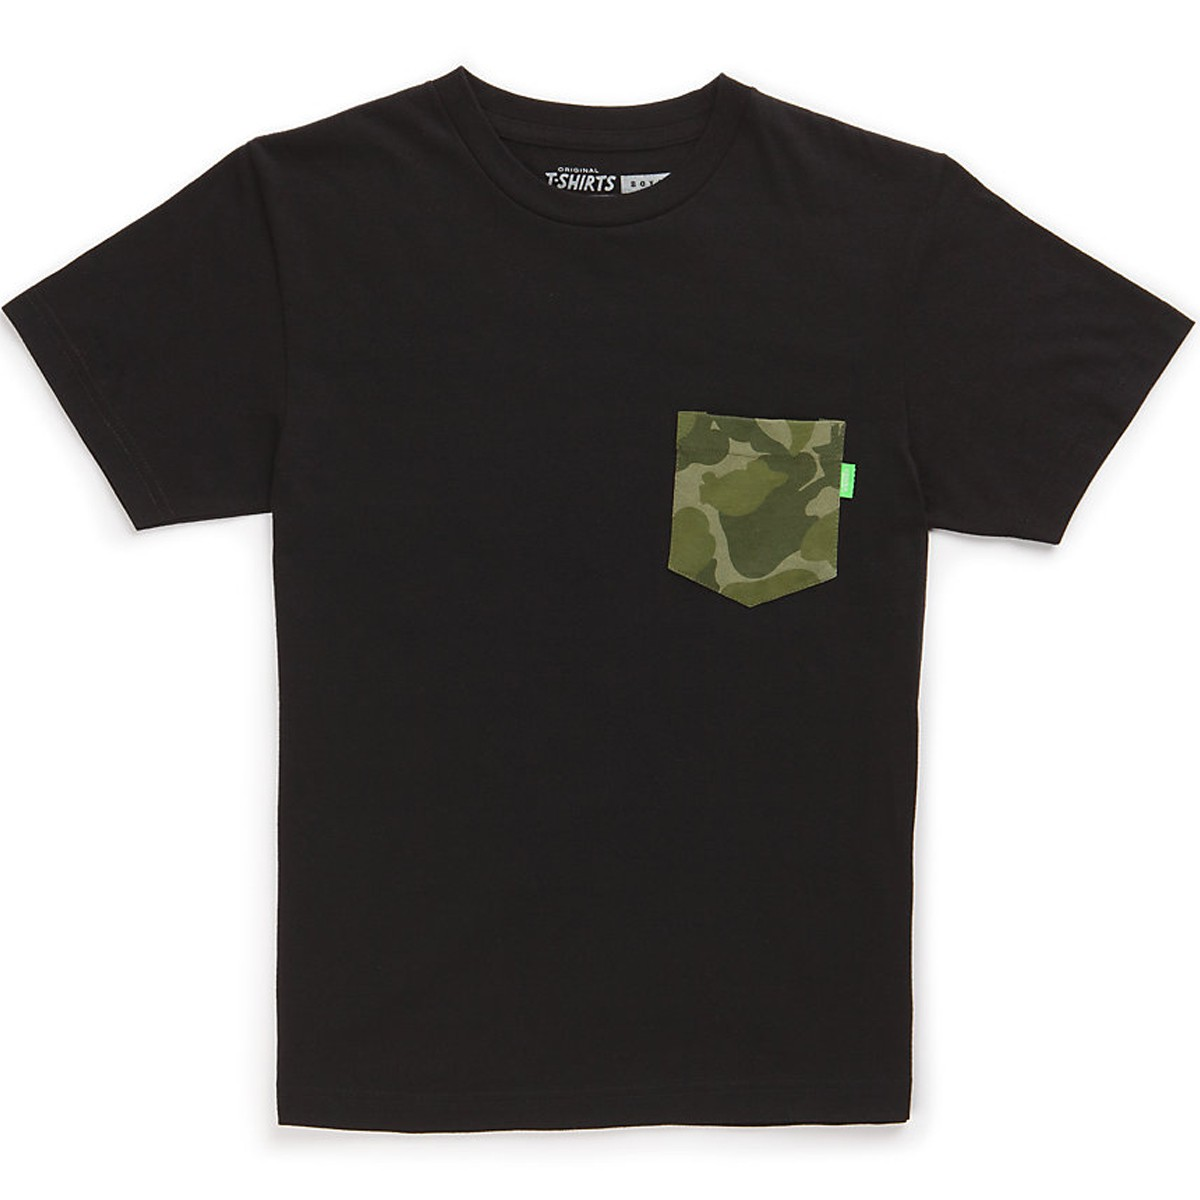 Vans Camo Pocket Boys T-Shirt - Black